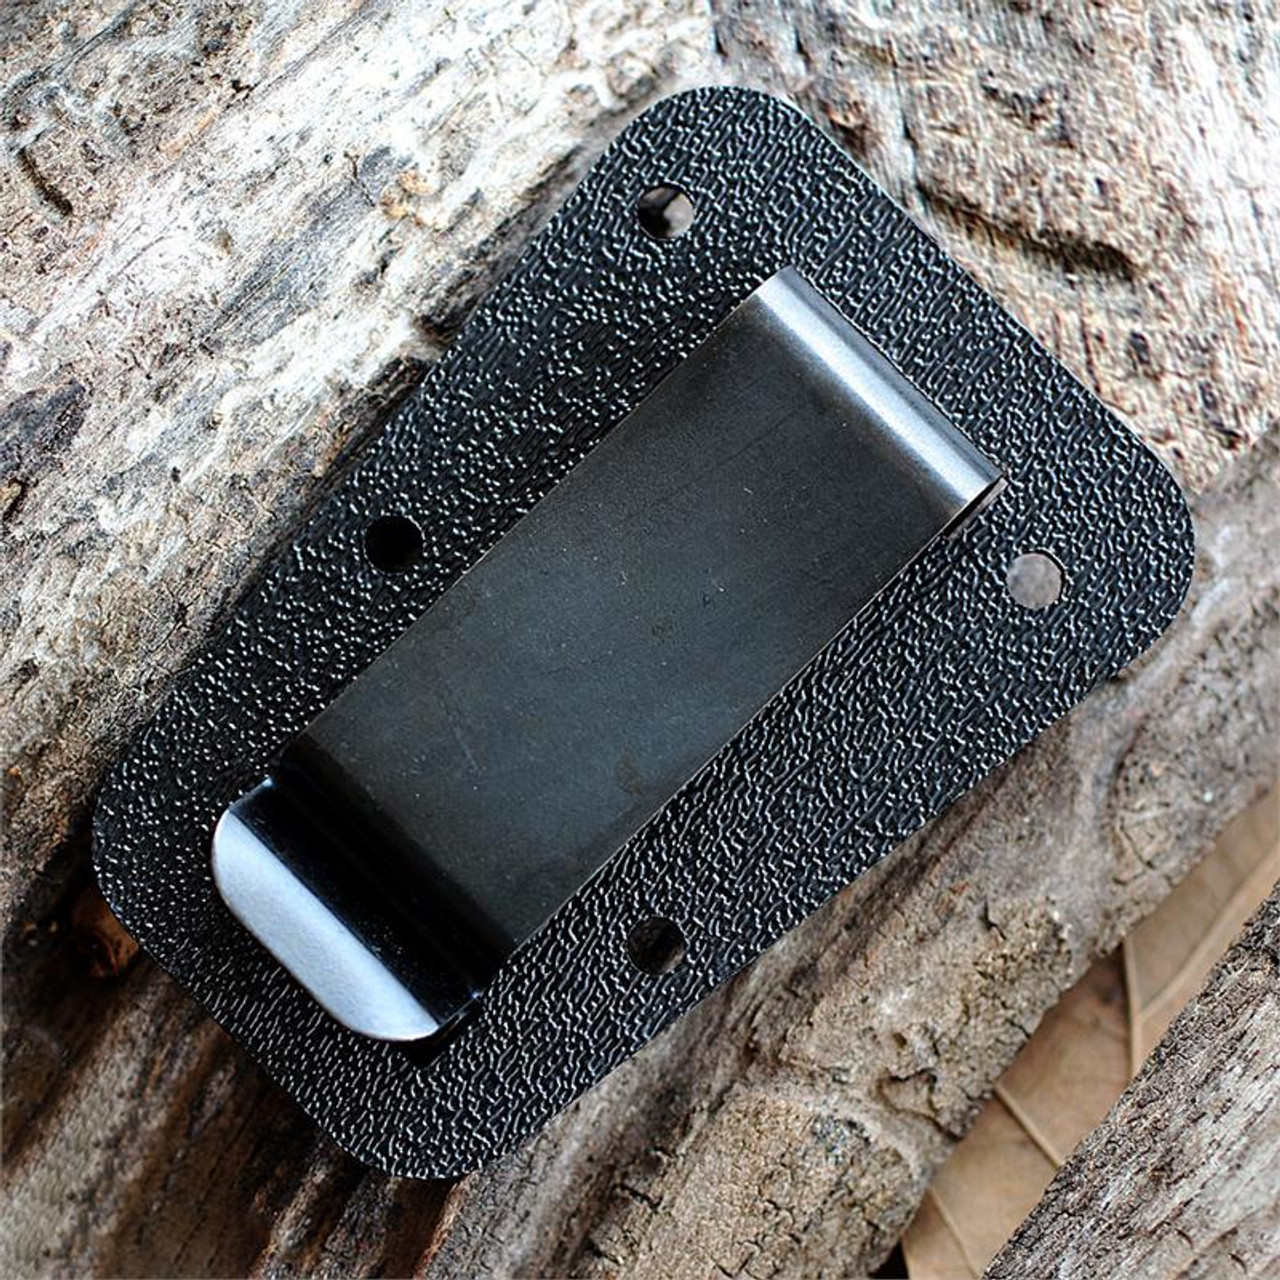 ESEE Izula Clip Plate For Izula Sheath, Fits Both IZULA & IZULA-II Sheaths